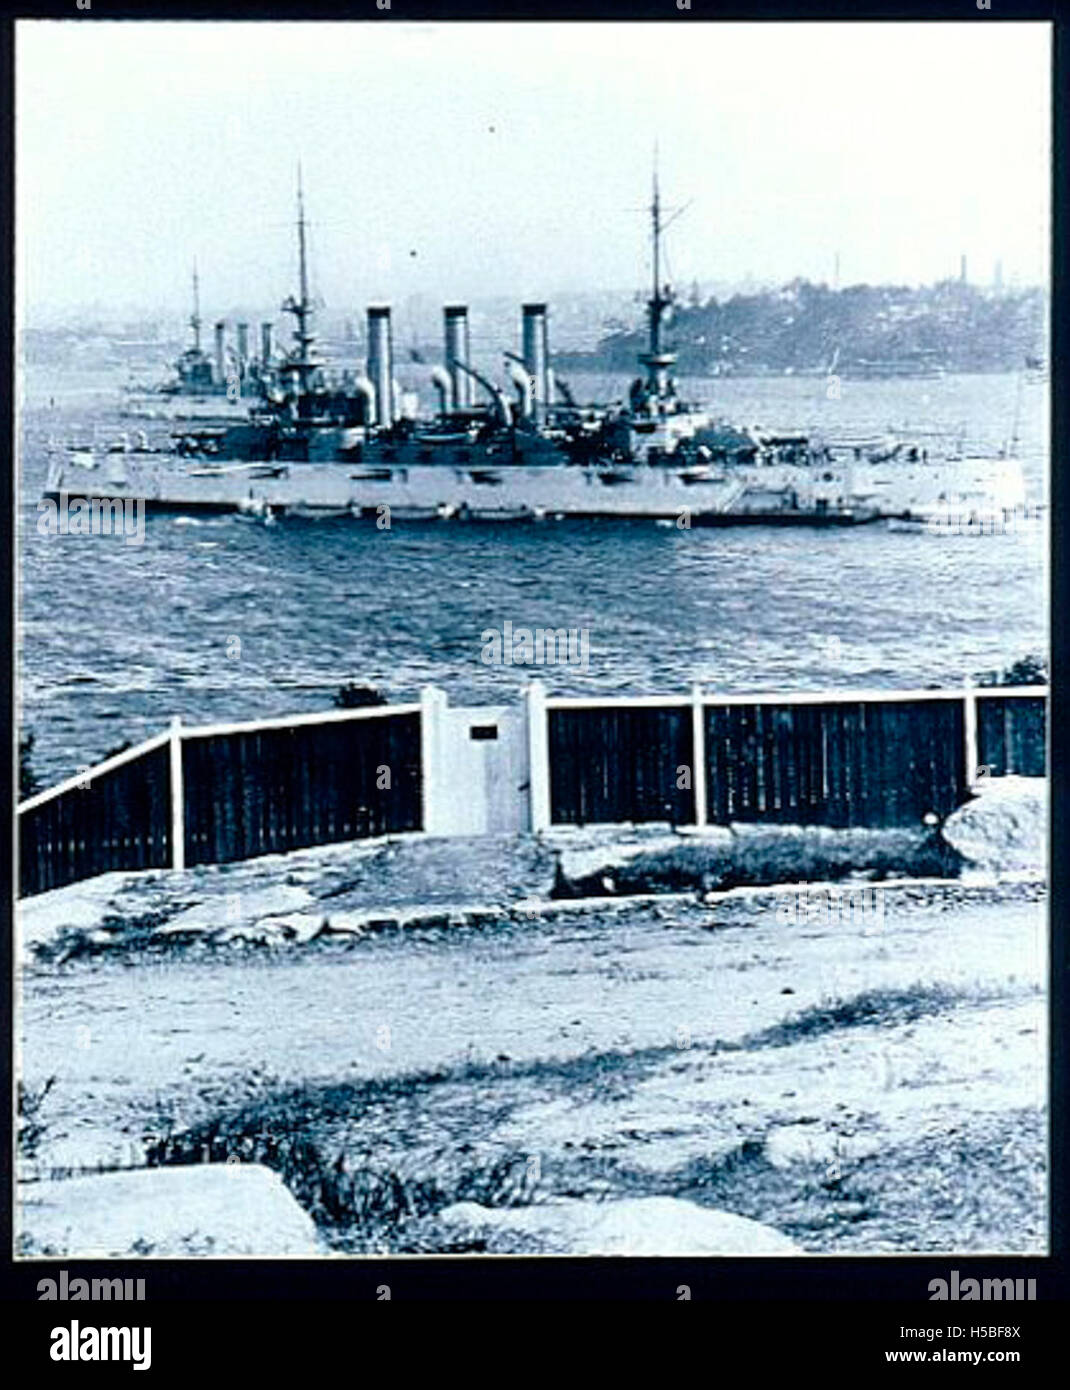 Two vessels of the Great White Fleet in Sydney Harbour Stock Photo